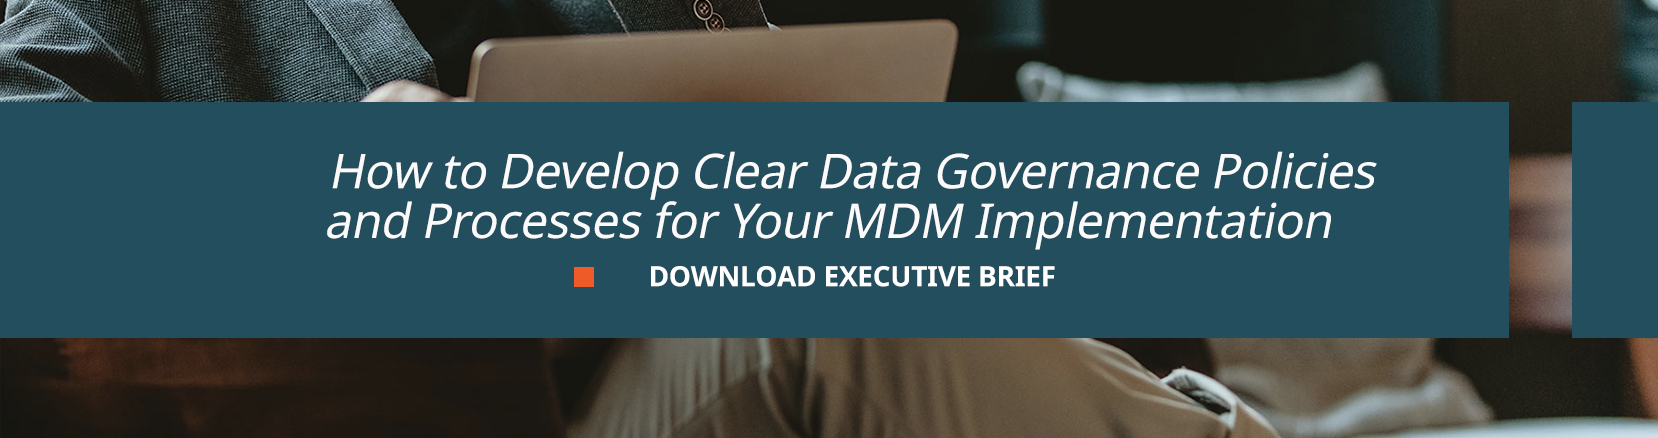 how to develop clear data governance policies and processes for your mdm implementation